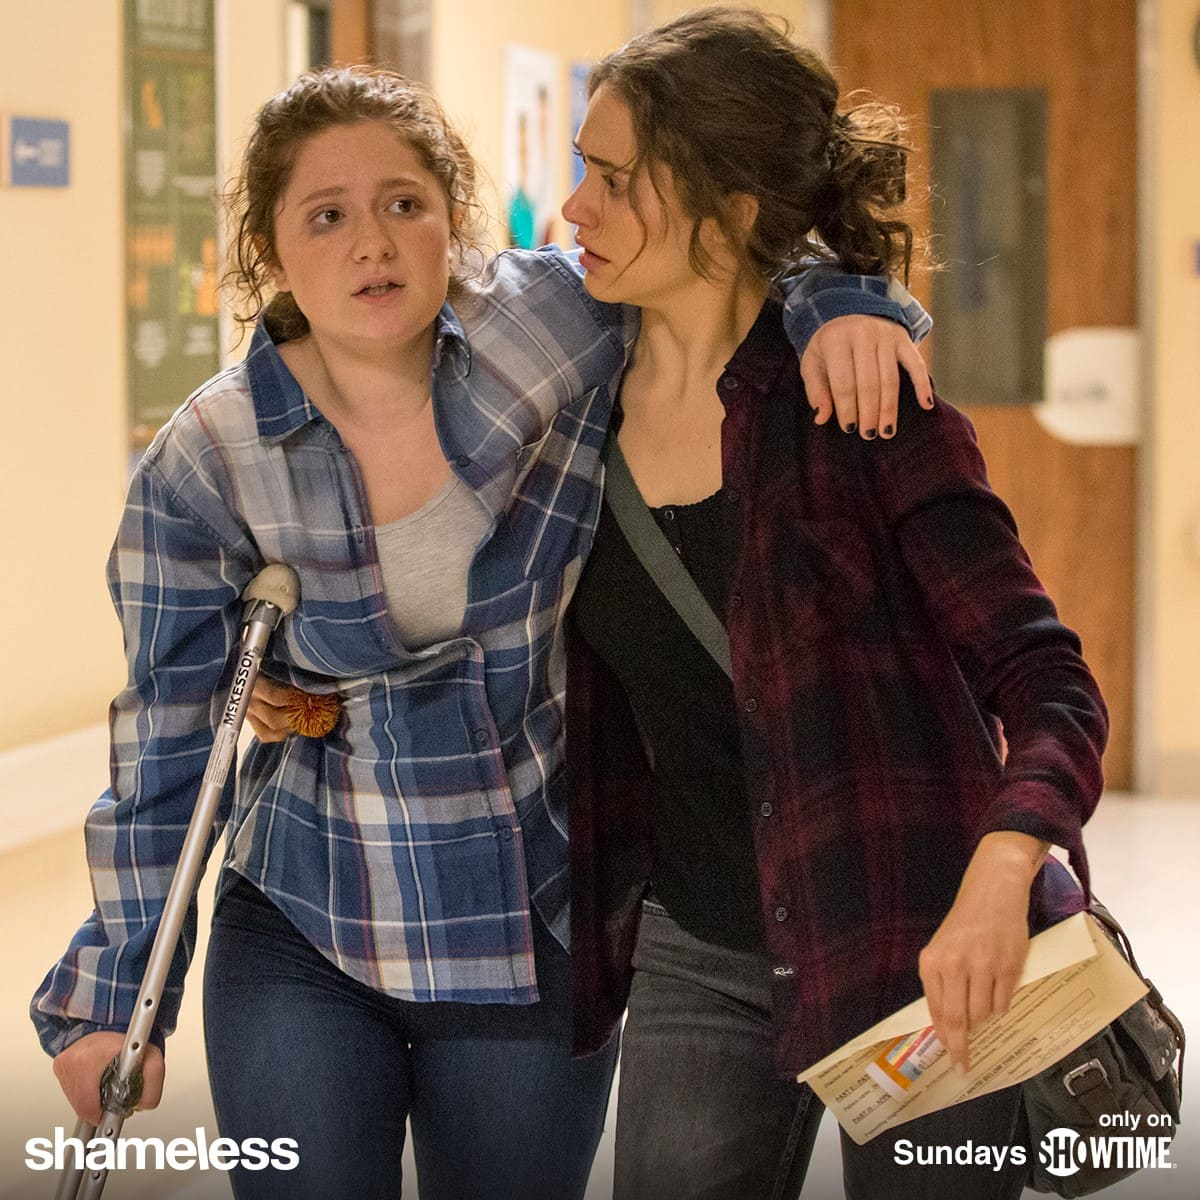 Scene from Shameless (Facebook)